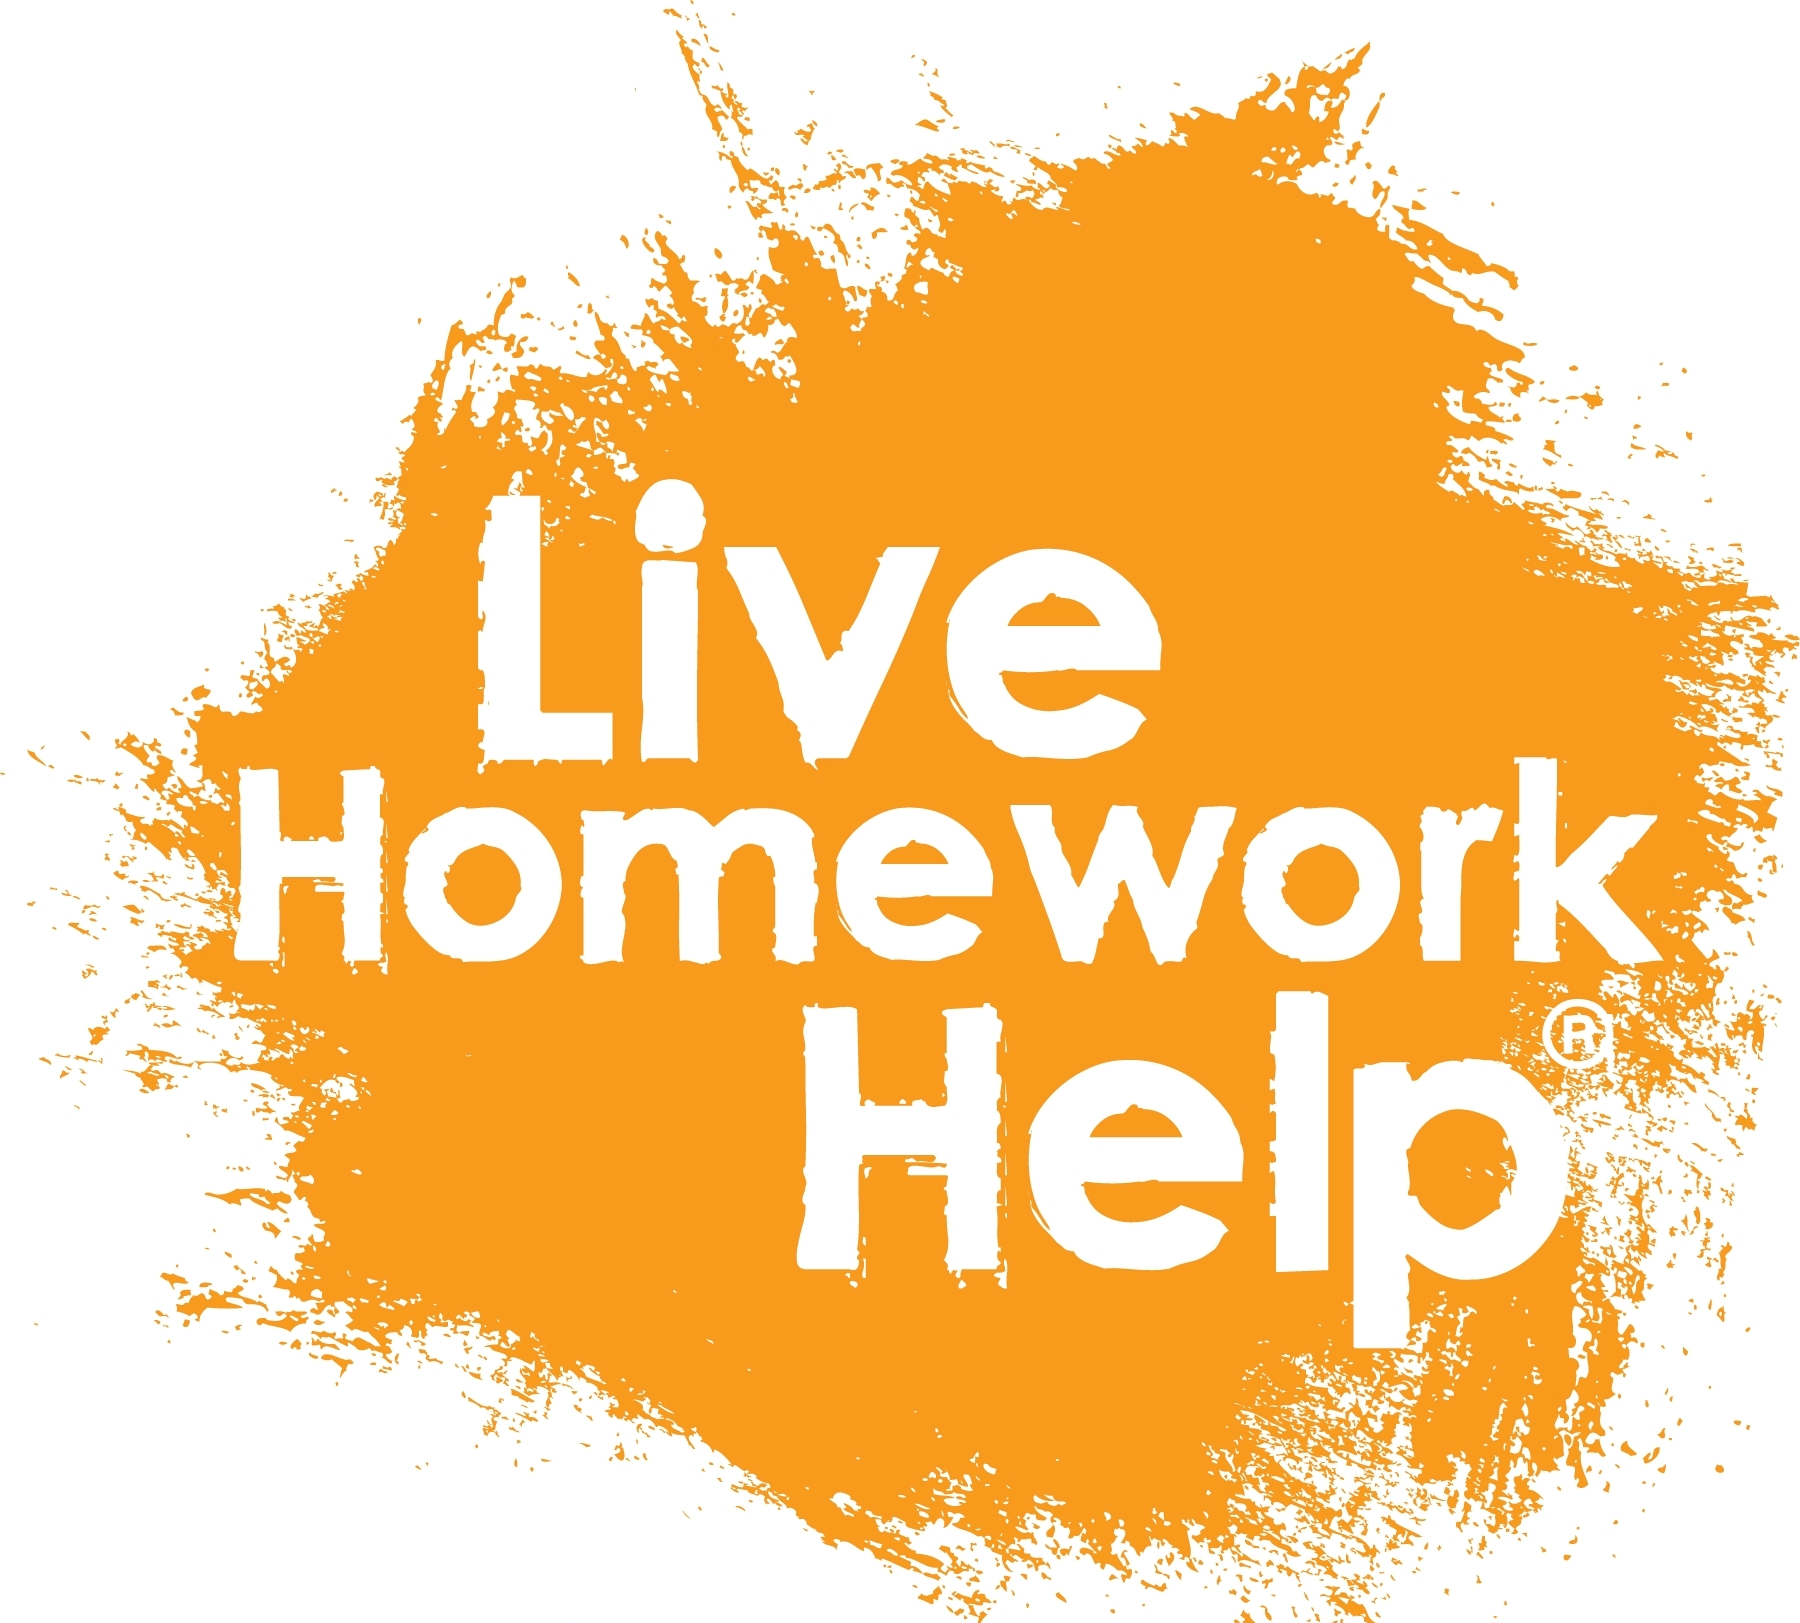 Online homework help sites